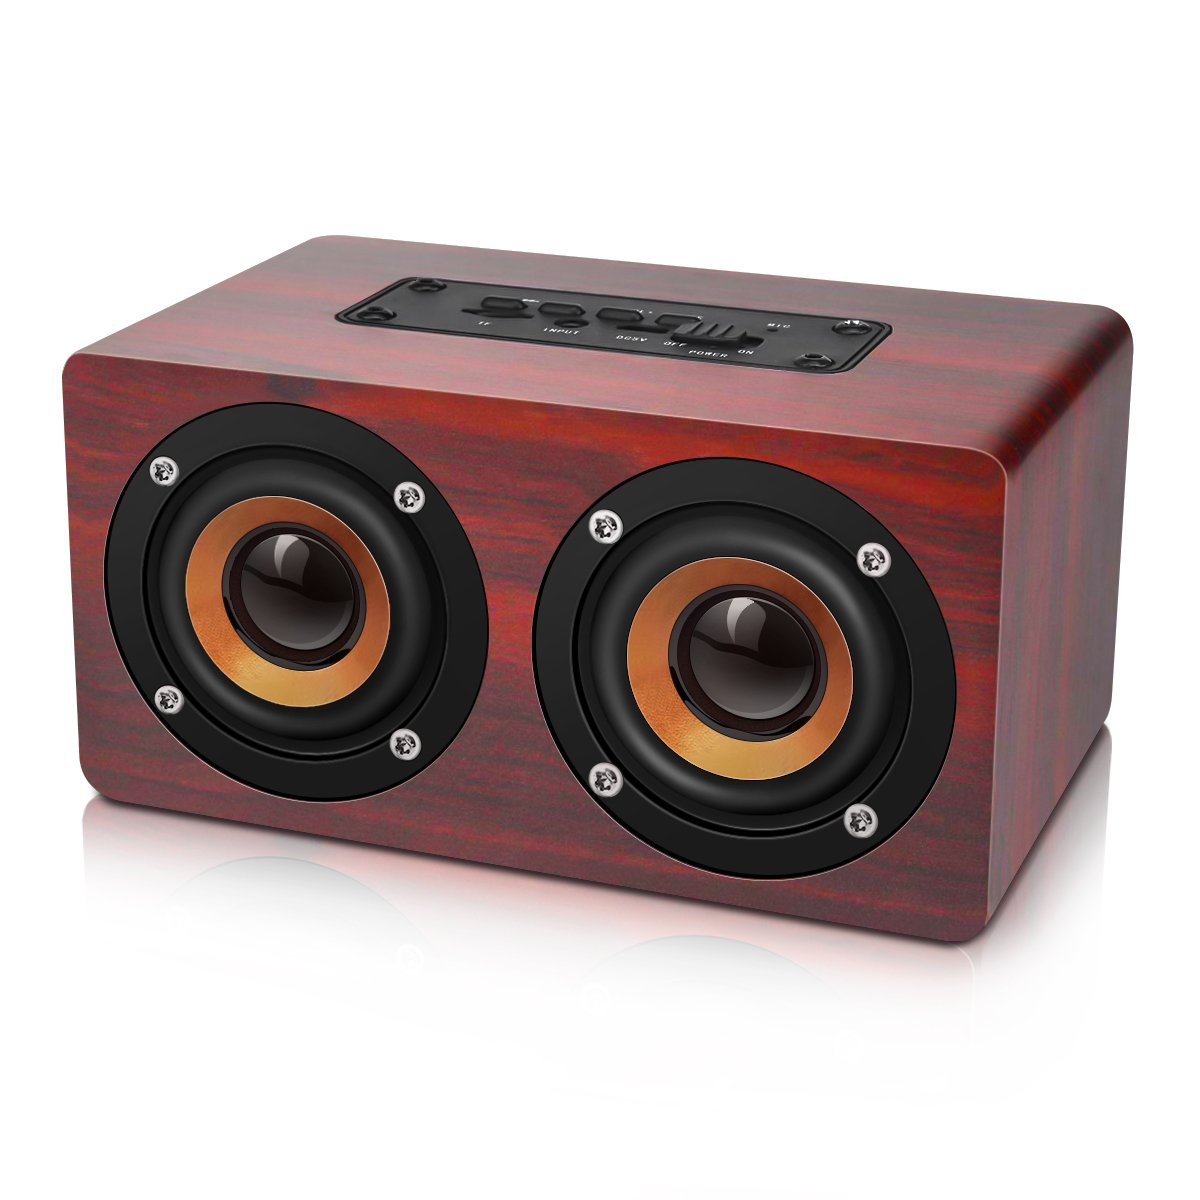 Portable Stereo Speaker, EIVOTOR 10W Wireless Home Speaker with Super Bass - Bamboo Wood HiFi Sound Box Subwoofers with Enhanced Bass Resonator Support TF Card Built-in Mic and Battery kcovss_ca EIVOTORjSKDEBjgZ